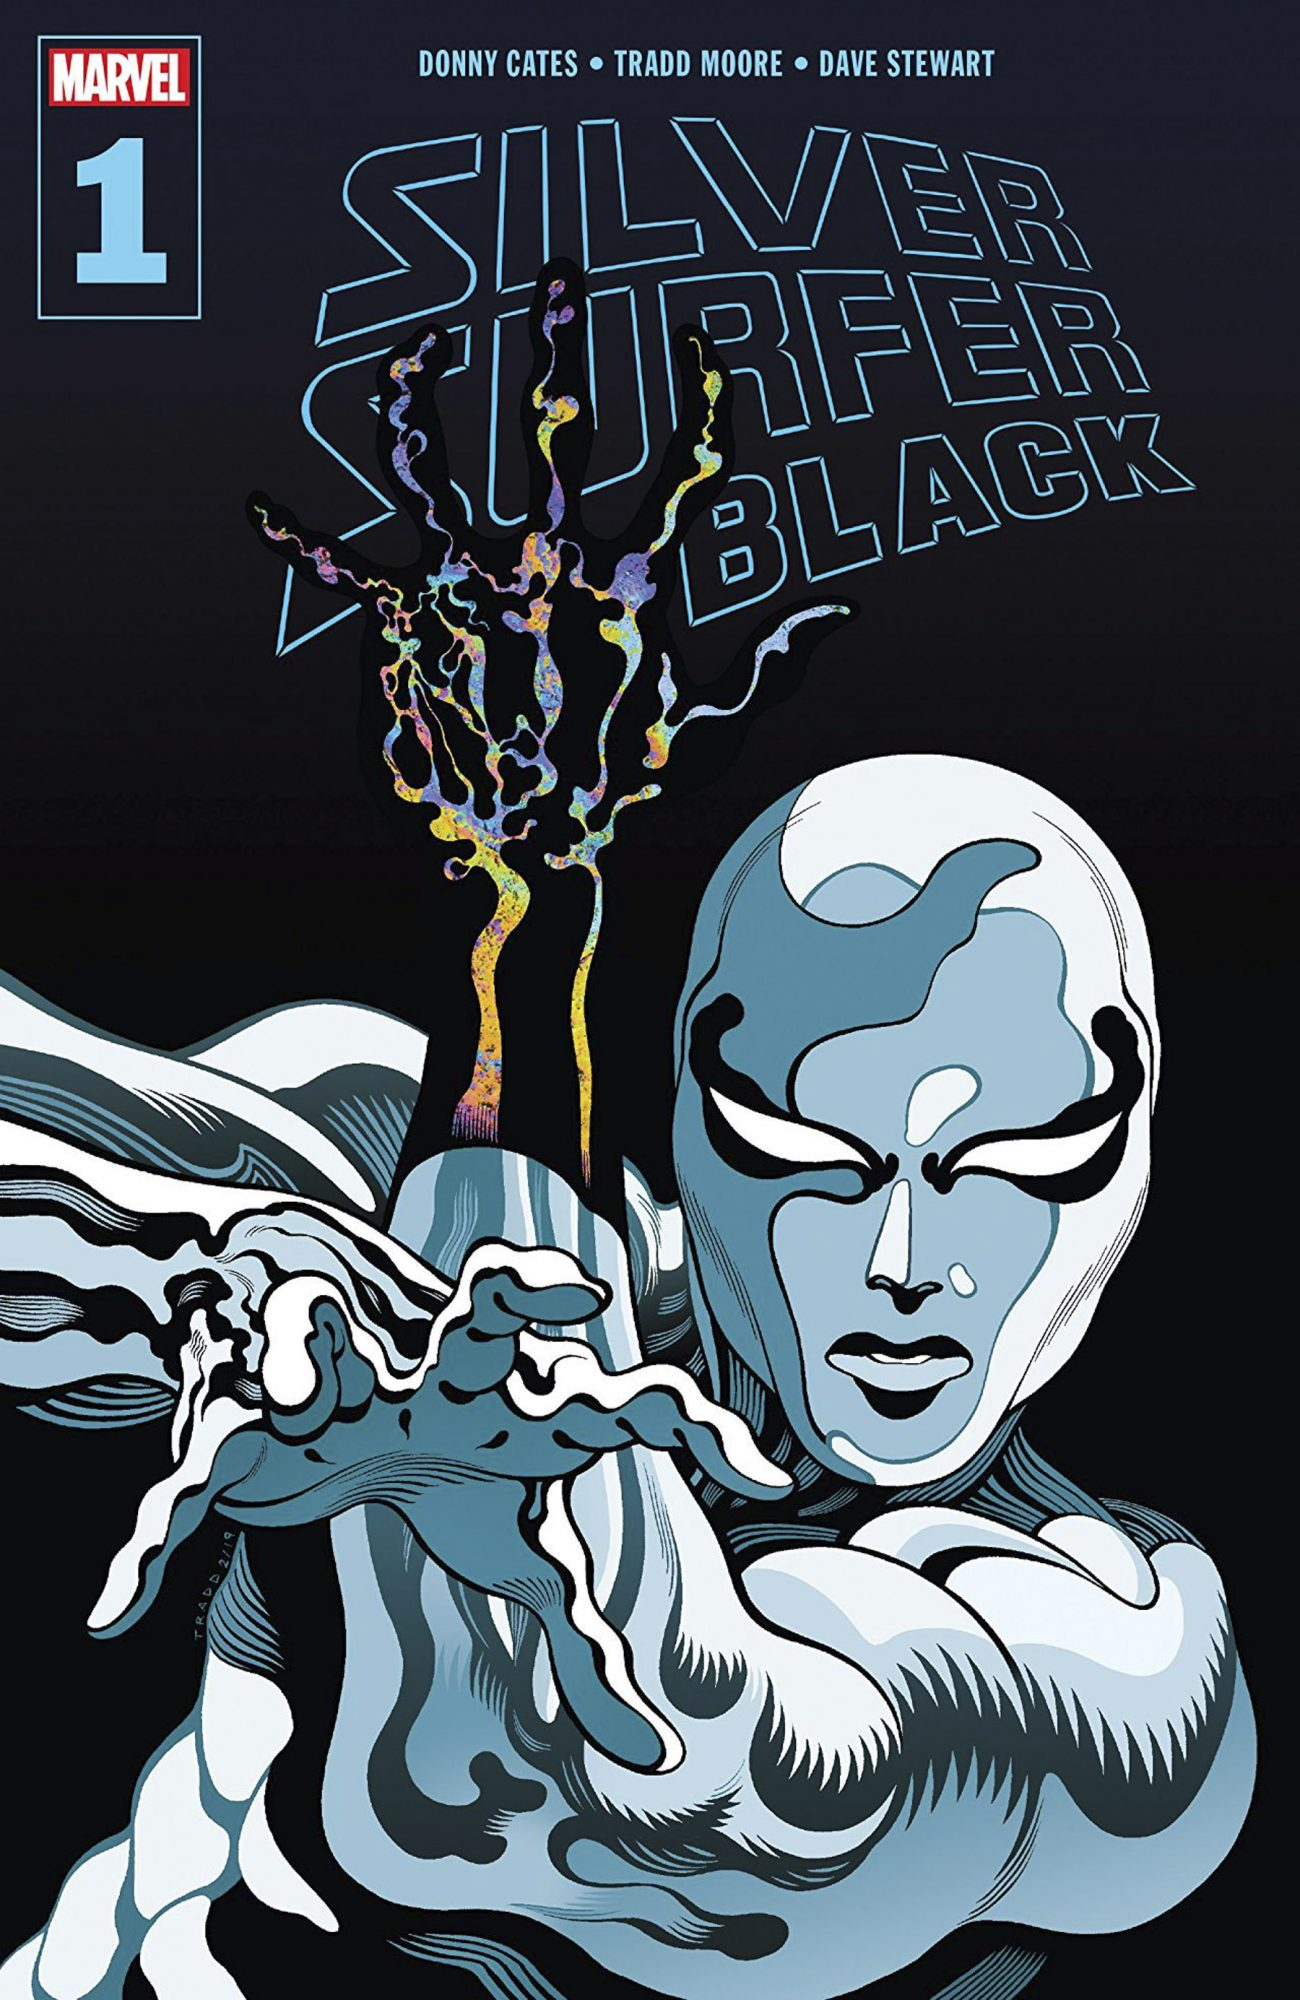 Silver Surfer: Black (2019-) #1 (of 5): Director's Cut CR: Marvel